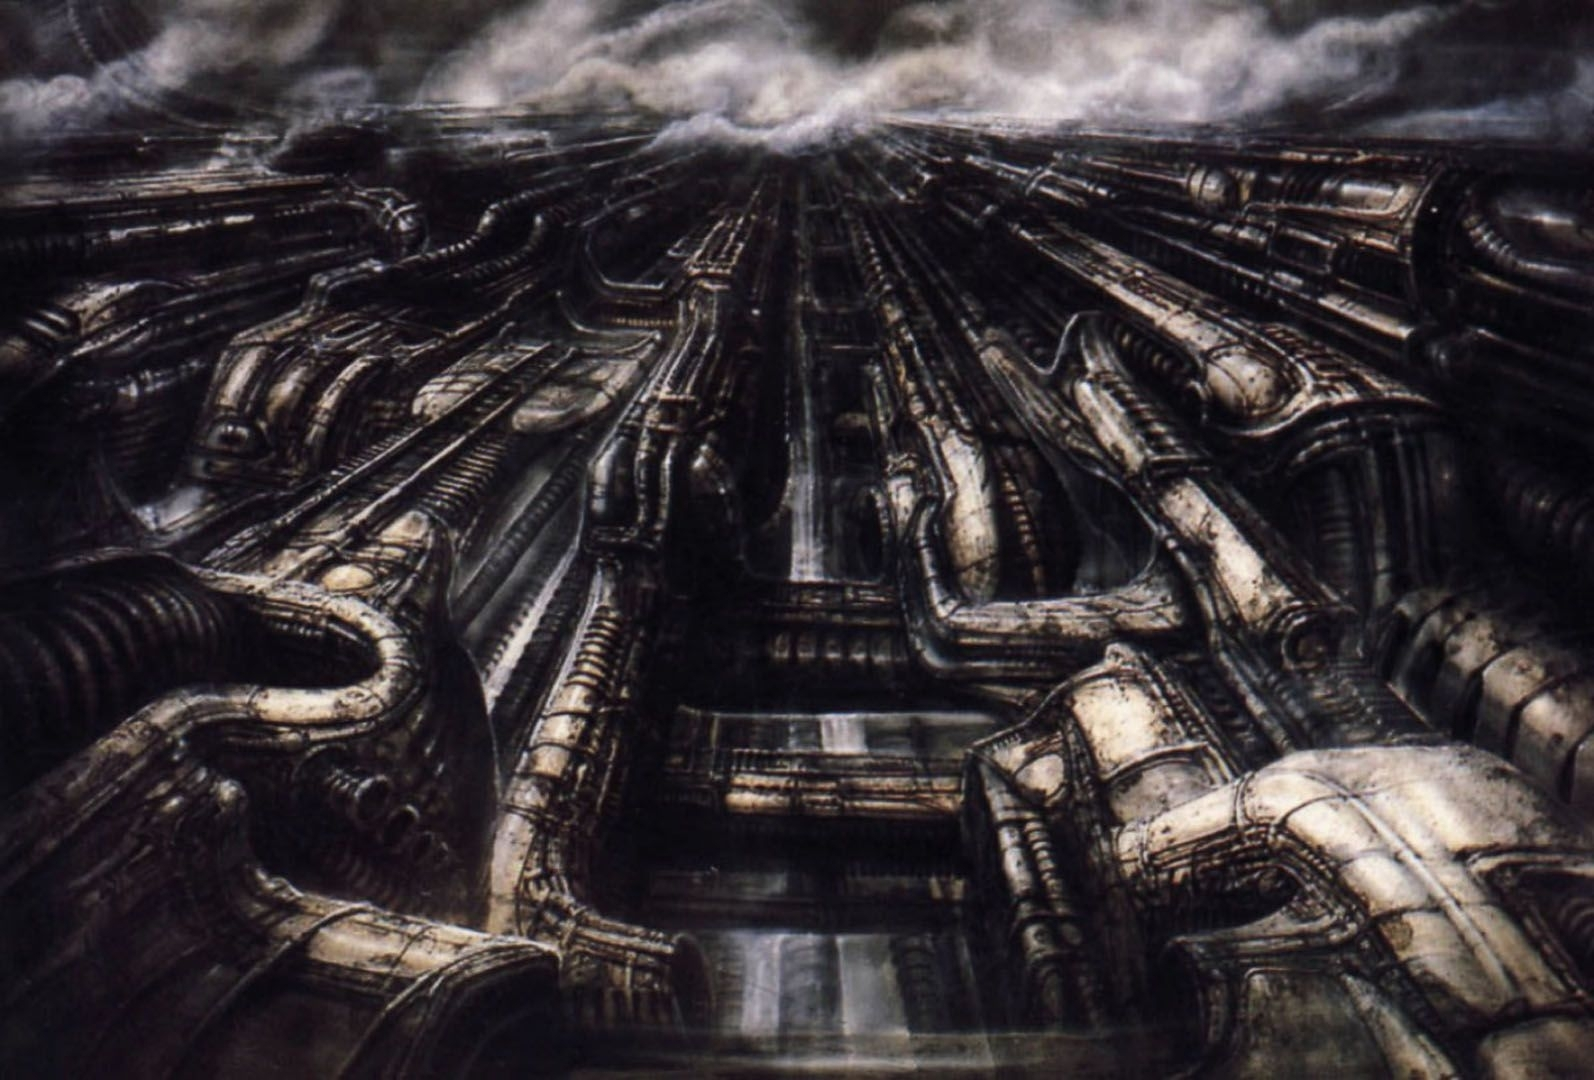 10 Top Hr Giger Biomechanical Wallpaper FULL HD 1920×1080 For PC Background